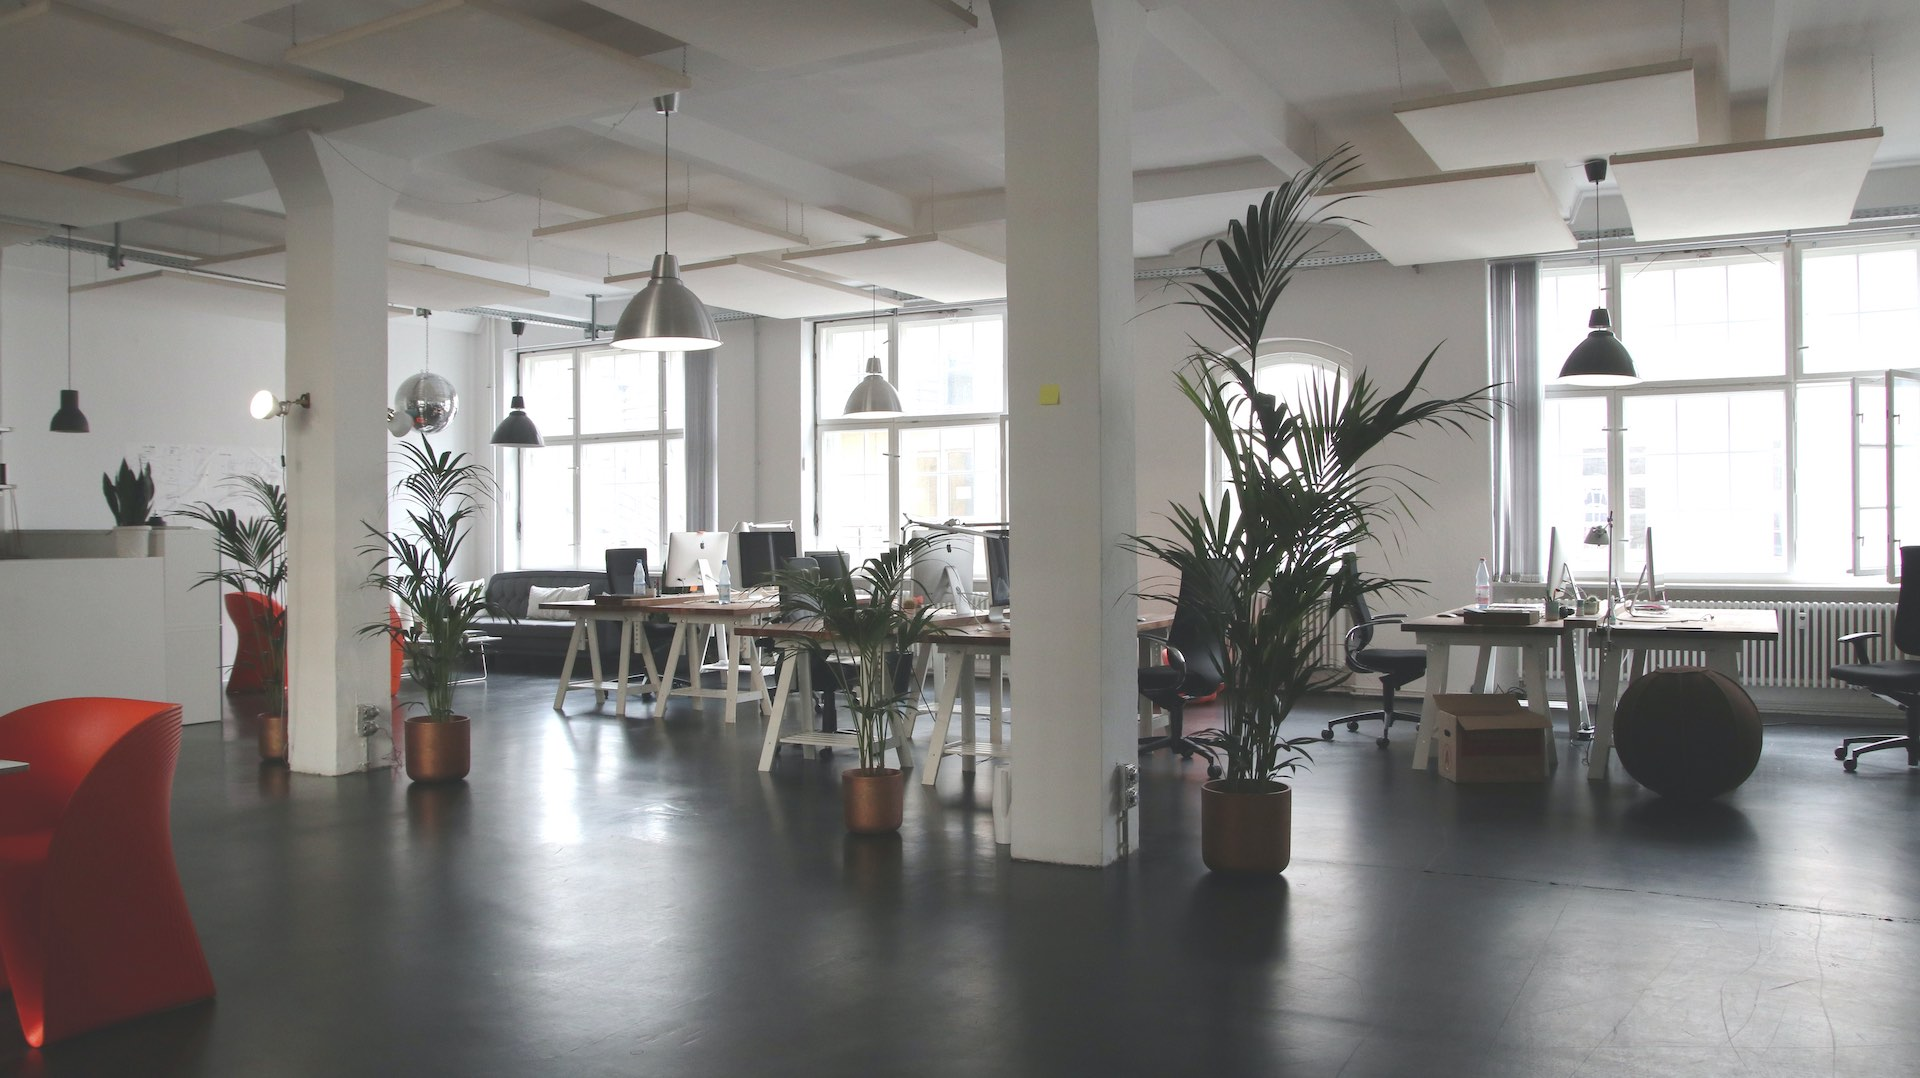 A beautiful open office with lots of natural light and green plants. There are desks that look like drafting tables and a sitting area for scrum meetings in the corner.